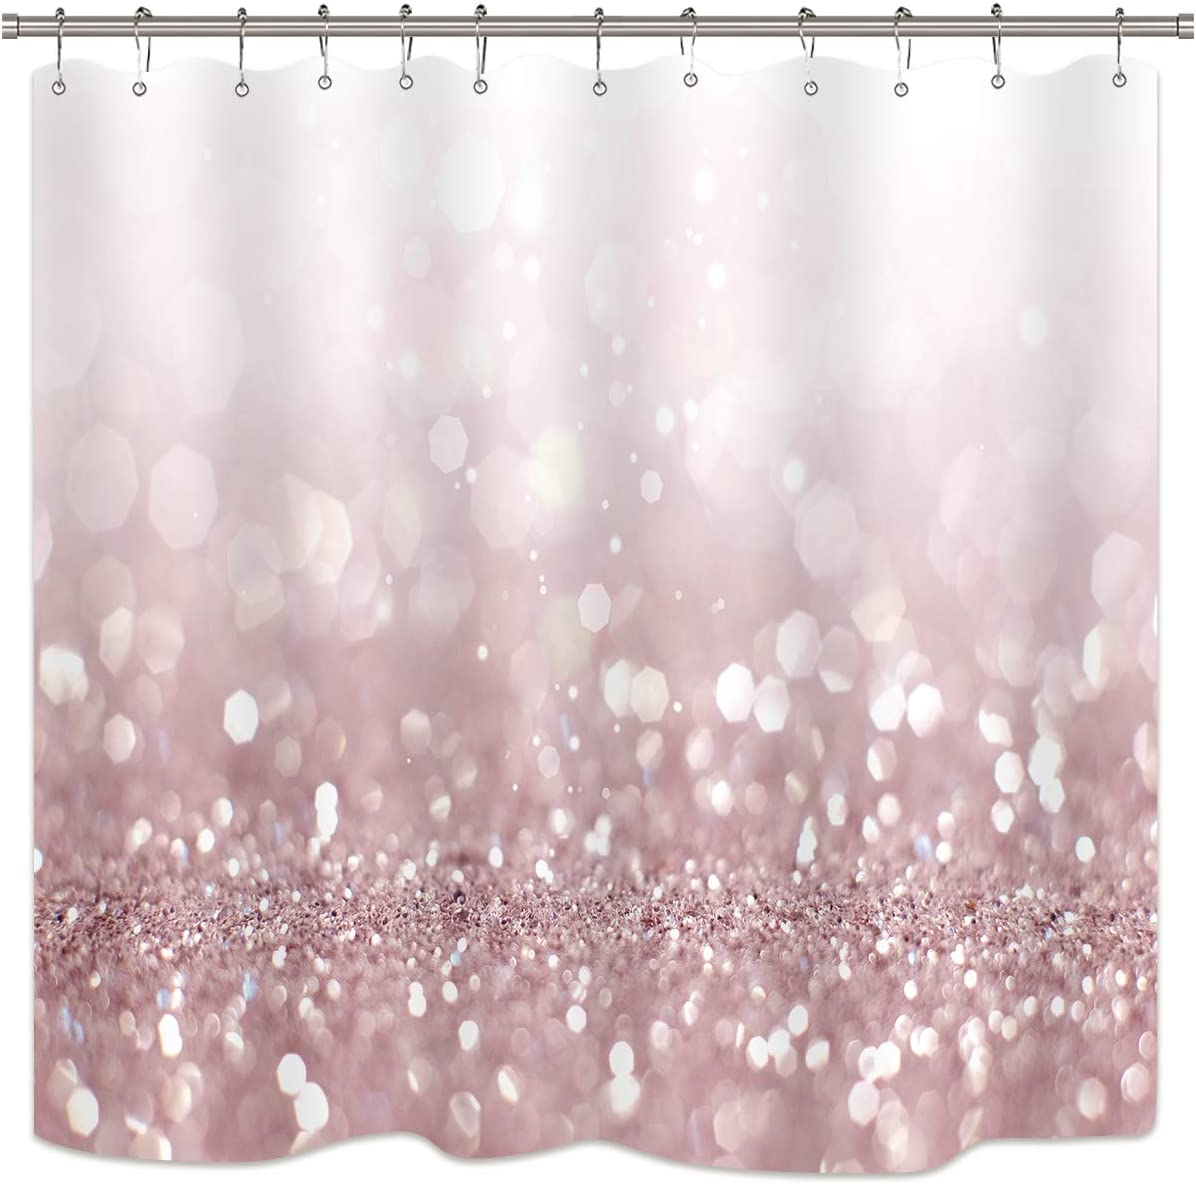 Riyidecor Pink Glitter Shower Curtain Girl Rose Gold Bling(No Glitter) Shining Sparkling Waterproof Bathroom Home Decor Set Party Decorations 72Wx72H Inch 12 Plastic Hooks